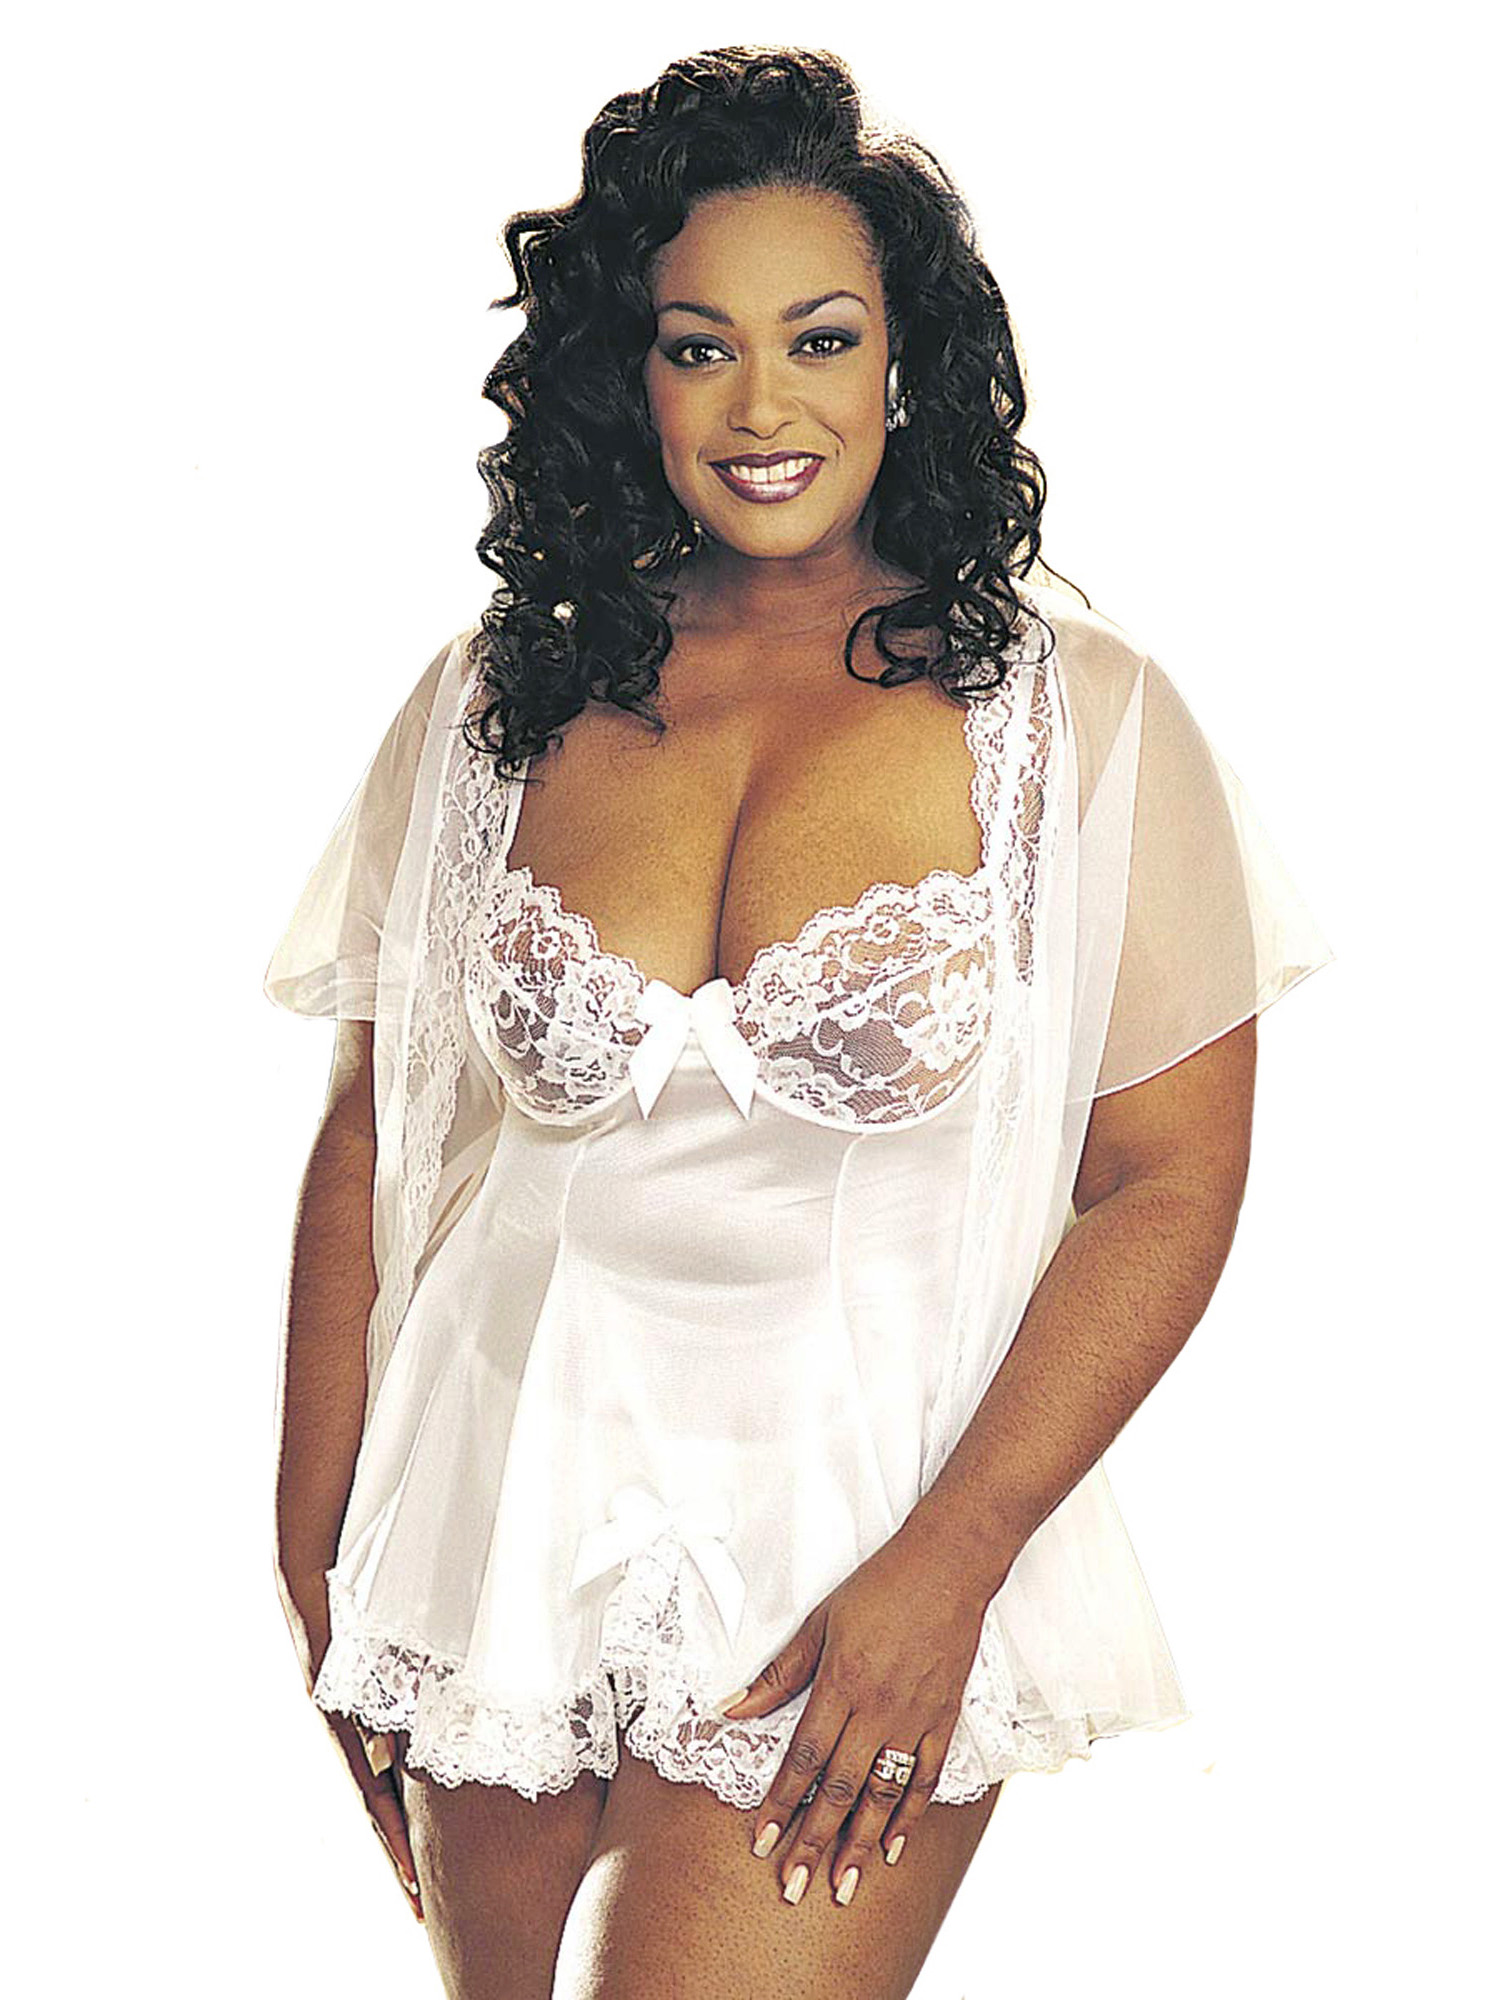 Plus Size Short Babydoll Peignoir Lingerie Set | eBay